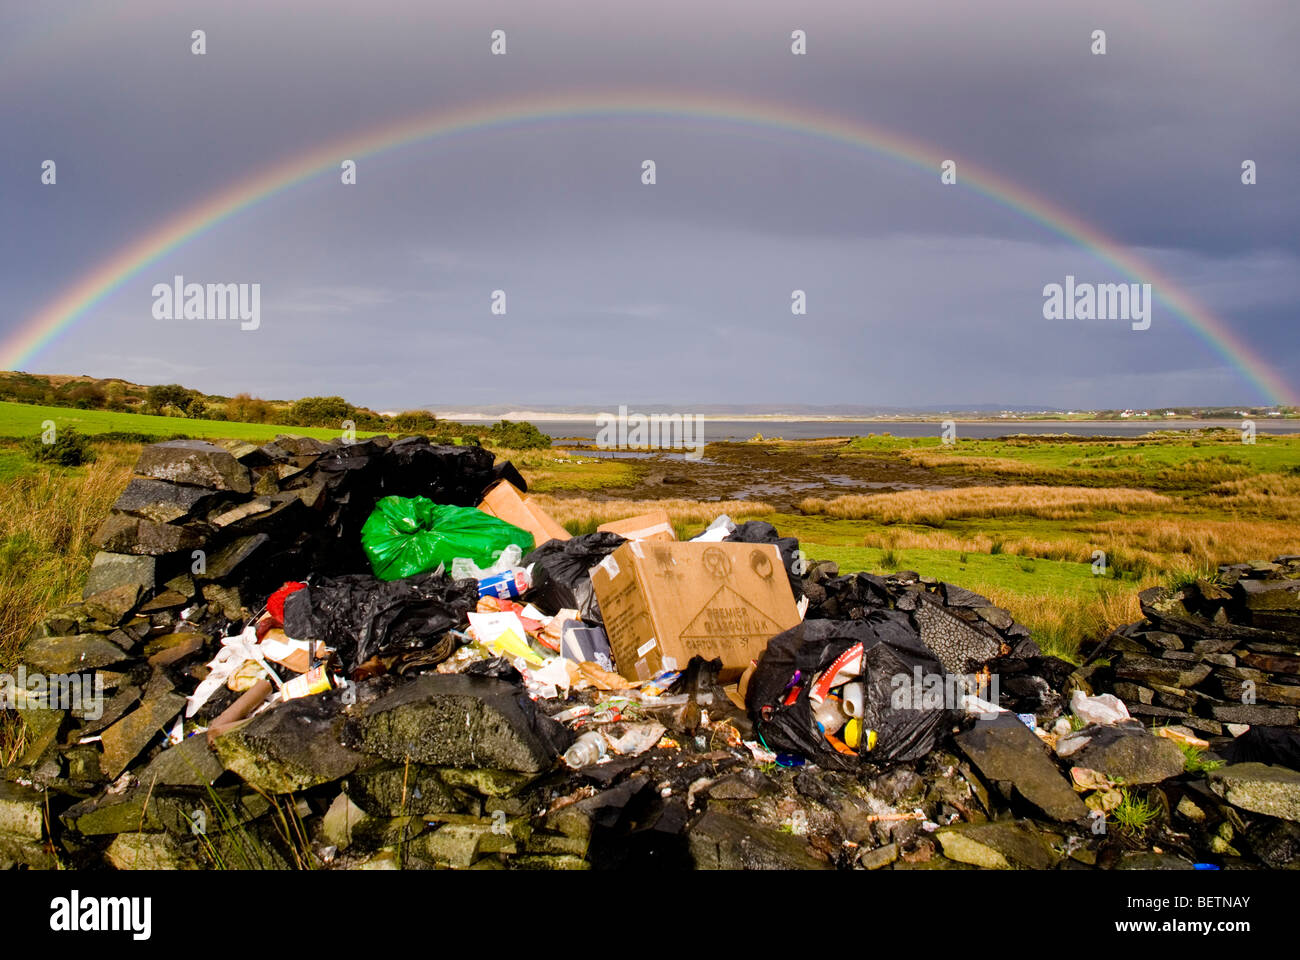 Donegal Ireland Dumped domestic refuse amid the natural beauty of the west coast of Irish Republic - Stock Image